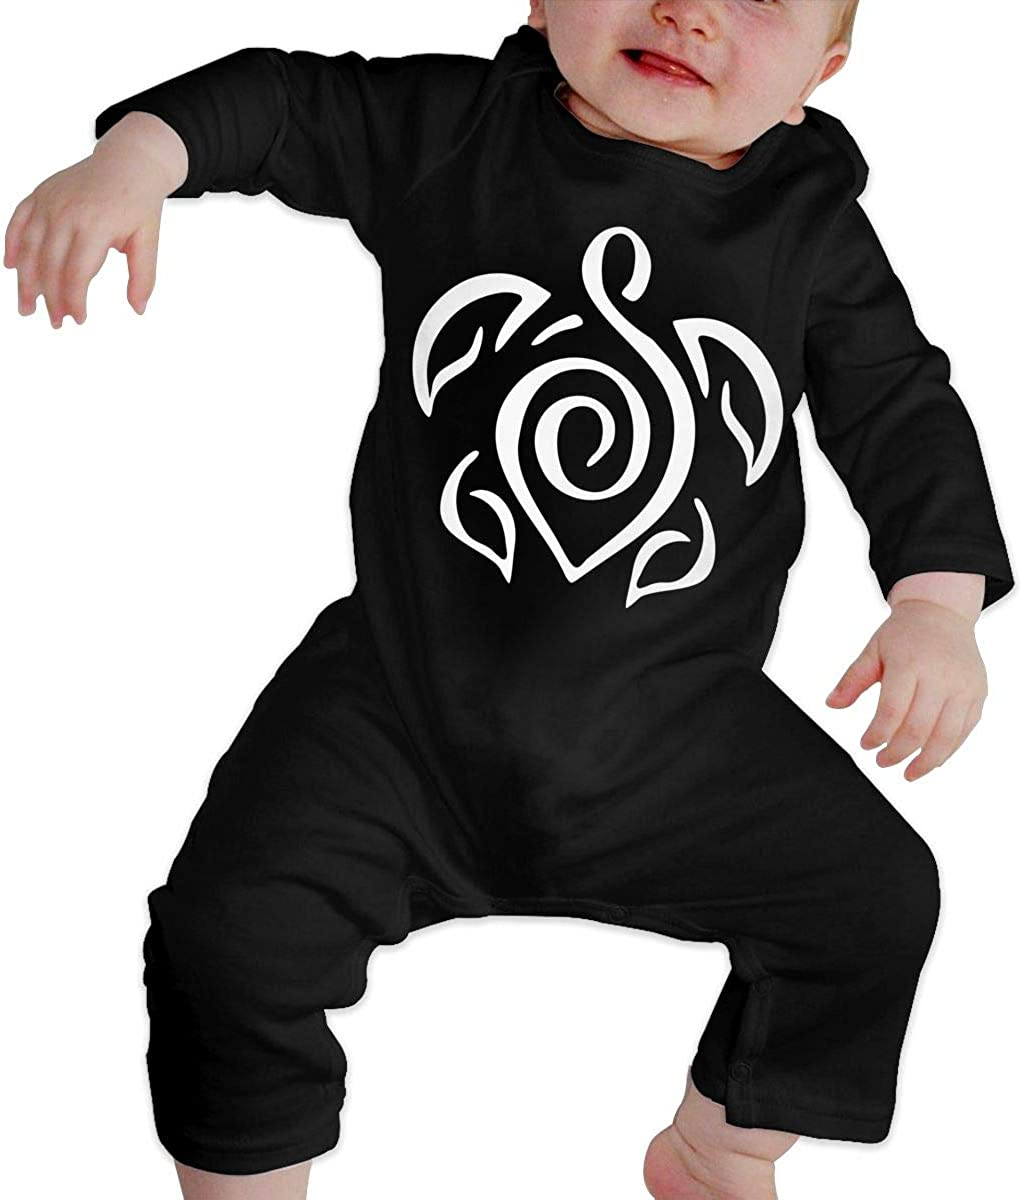 Baby Boys Romper Jumpsuit Tattoo Clipart Turtle-1 Organic One-Piece Kid Pajamas Clothes